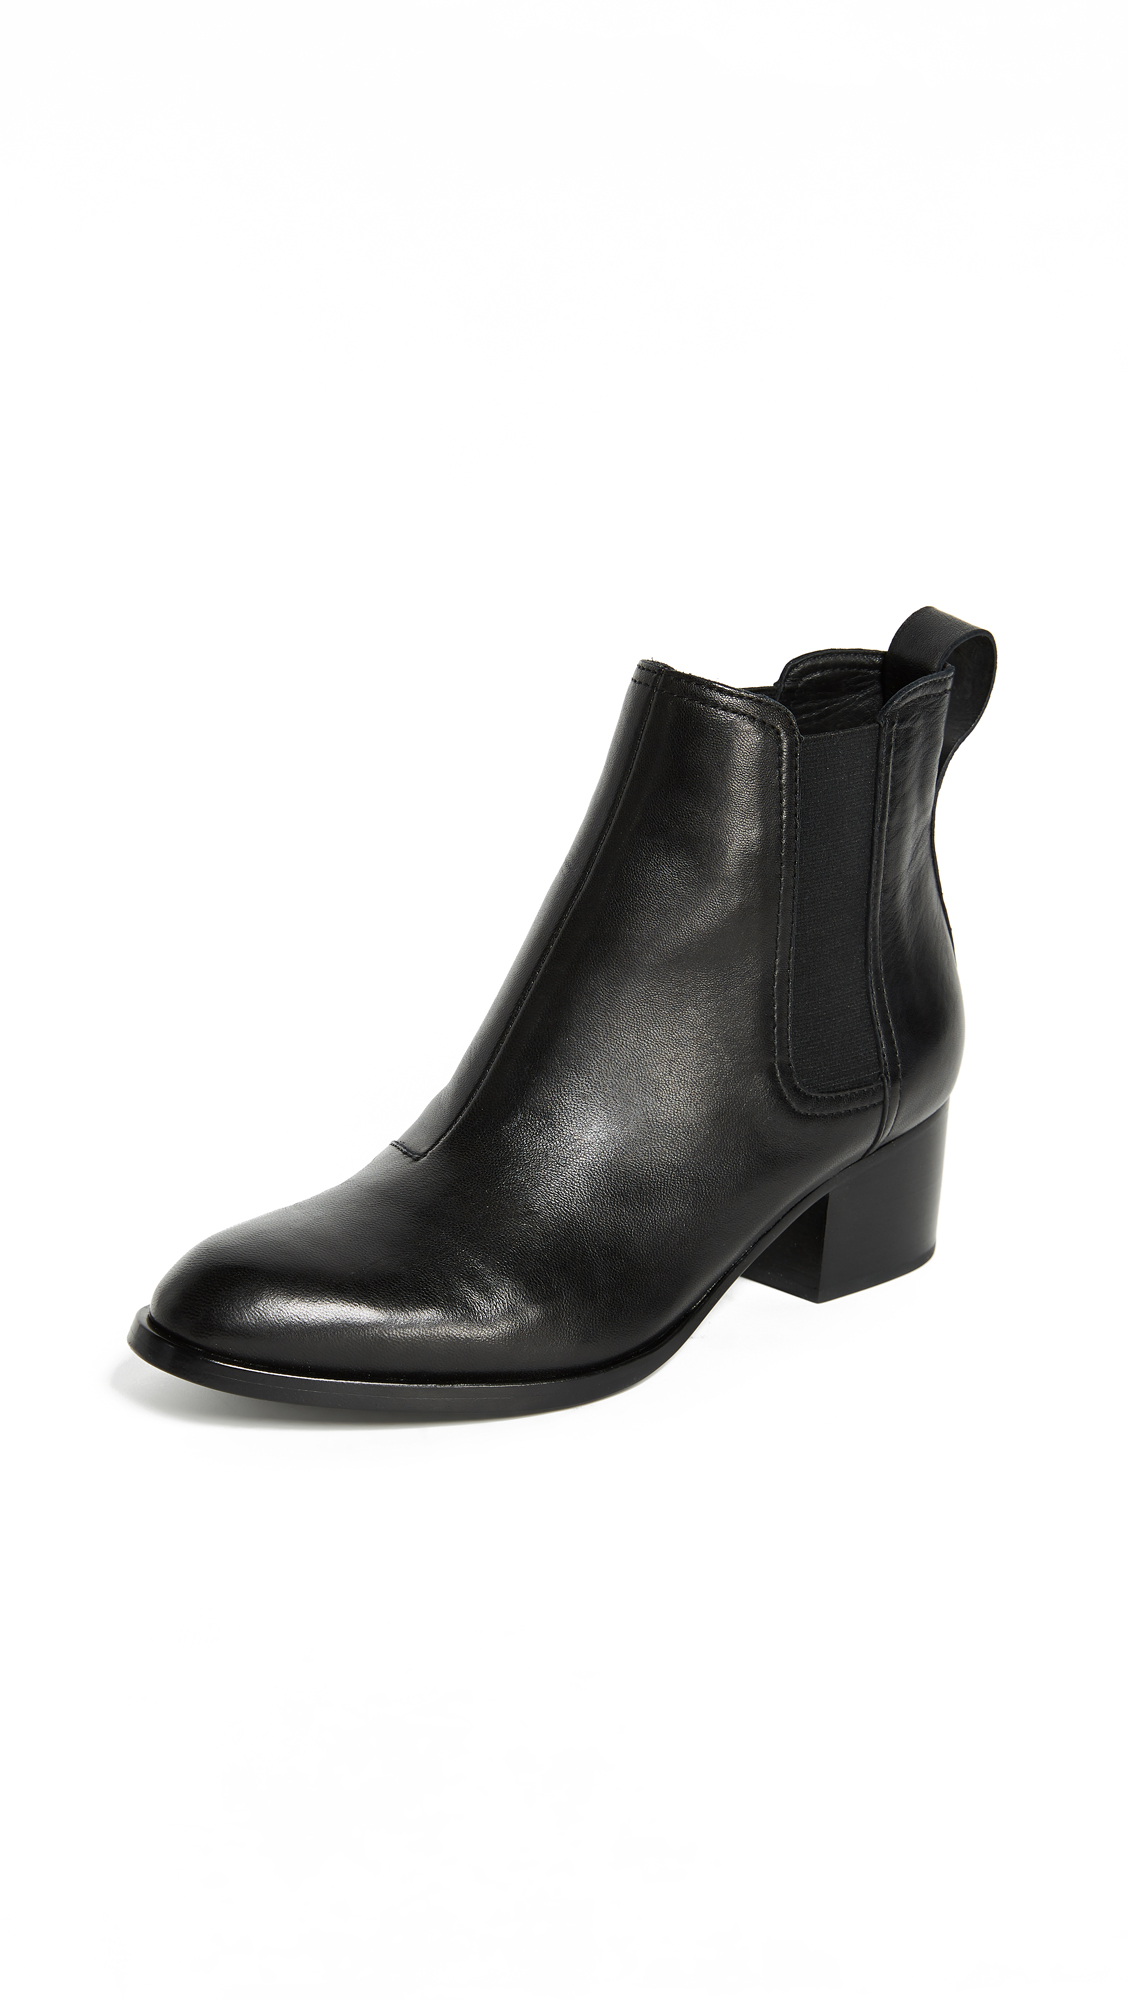 Rag & Bone Walker Booties - Black